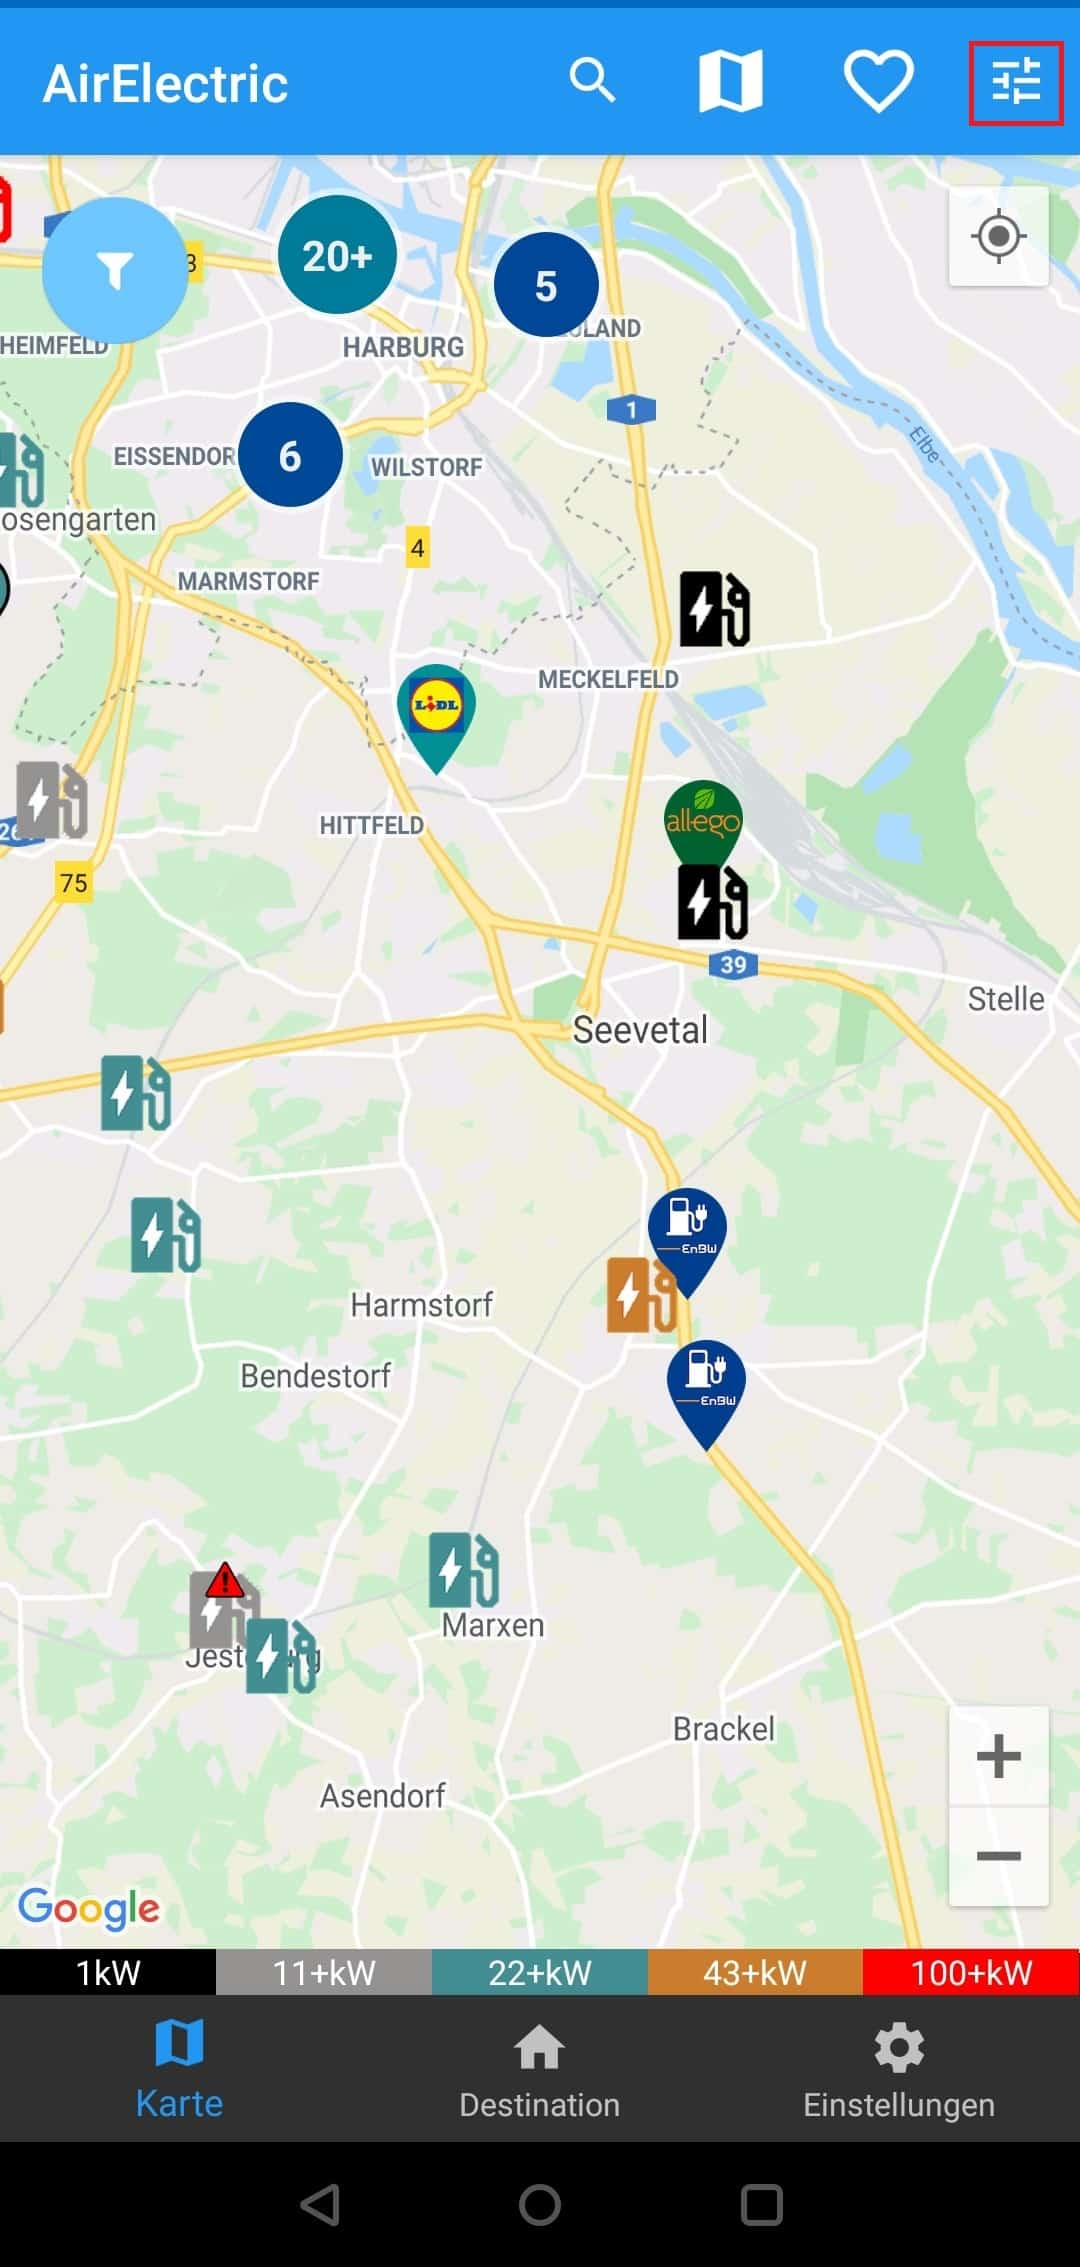 AirElectric (Android) Karte / Map